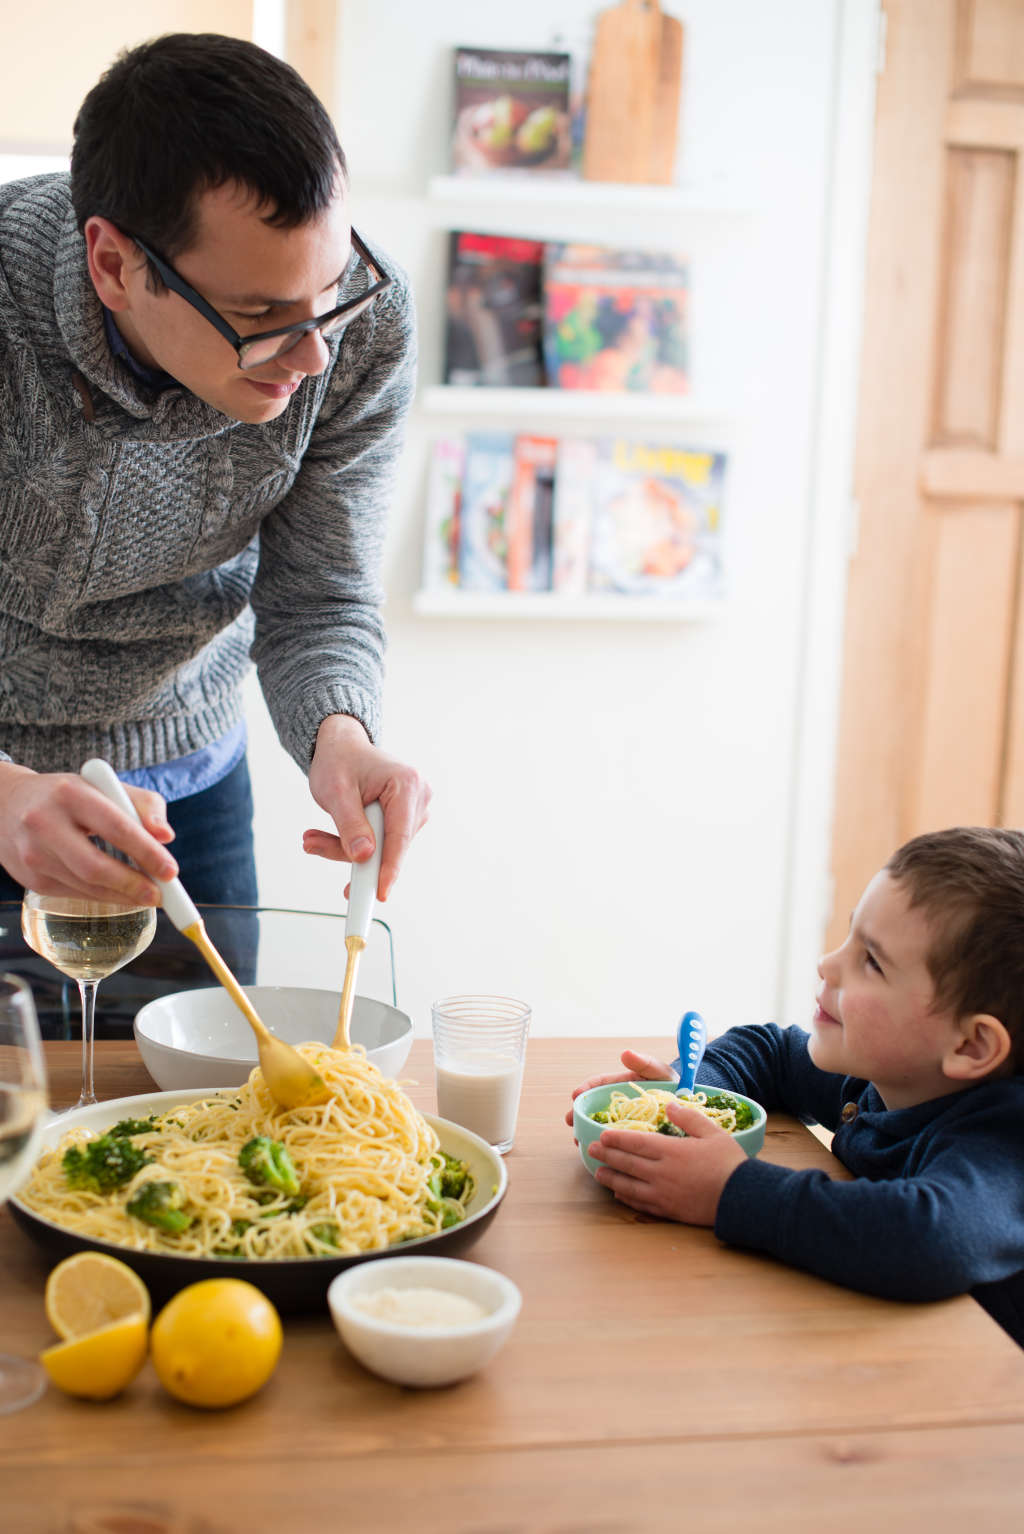 5-Ingredient Recipes to Make Your Family Happy & Healthy